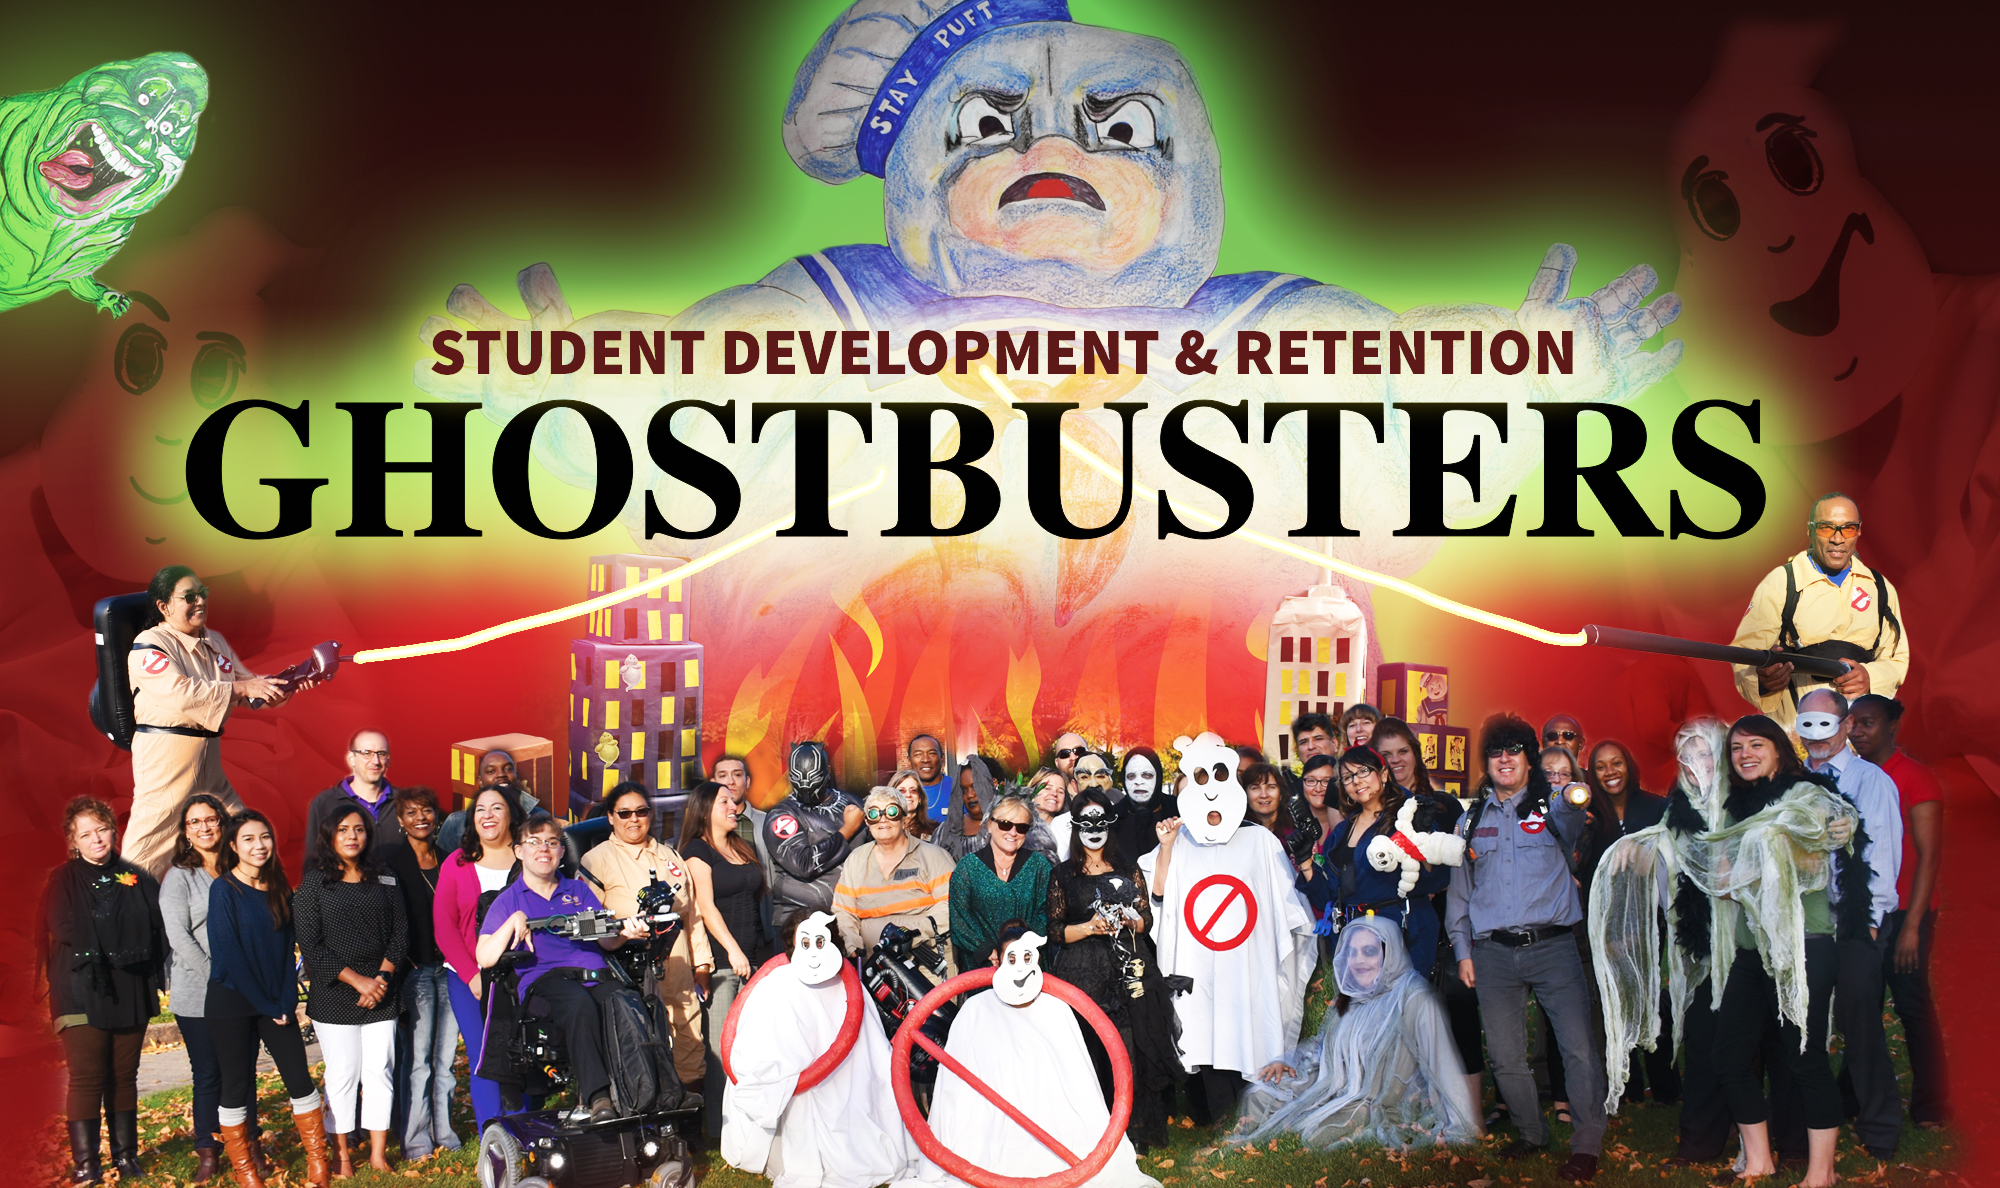 ghostbusters themed with group employees in costumes